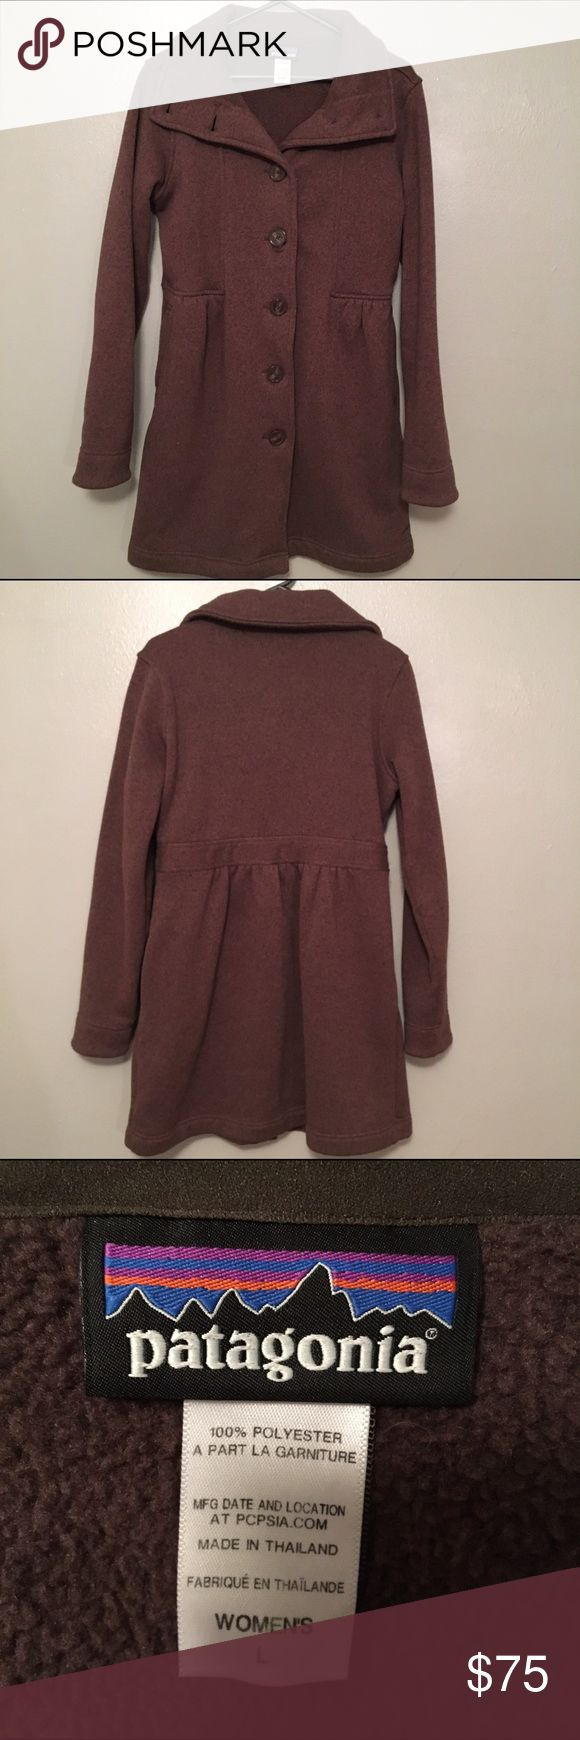 Patagonia Better Sweater Coat Like new!! Only worn a few times. This coat is SO soft and comfortable. Not missing any buttons. No holes or stains. Overall great condition. Pockets on front. Patagonia Jackets & Coats